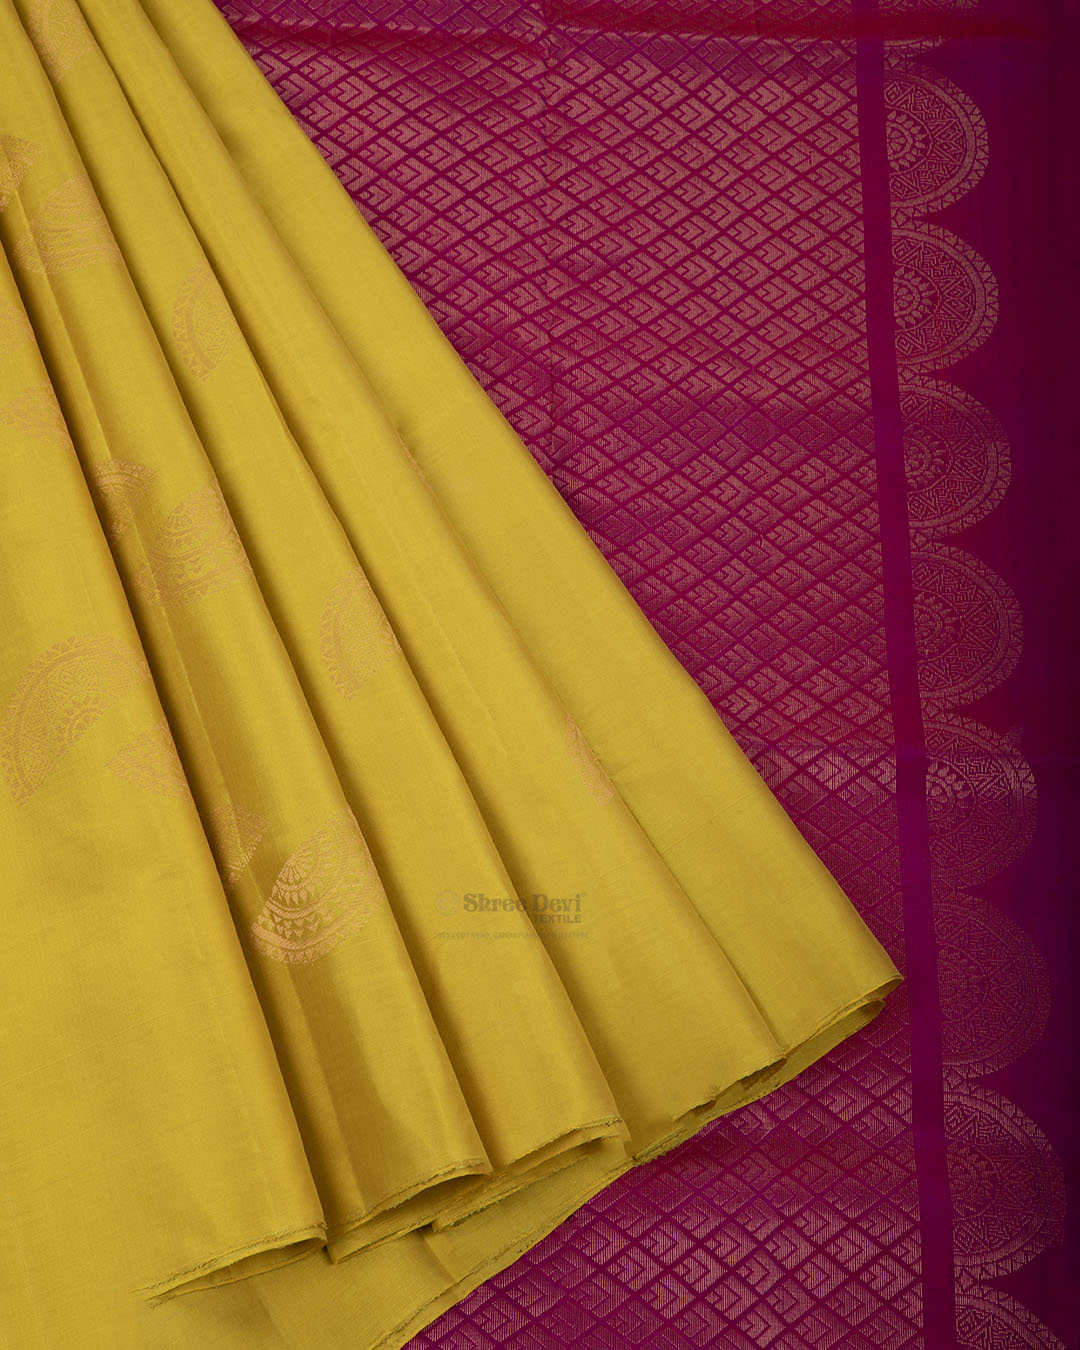 Yellow Elite Motif Kancheevarams Silk Saree with Golden Semi Circle Design Zari Motifs